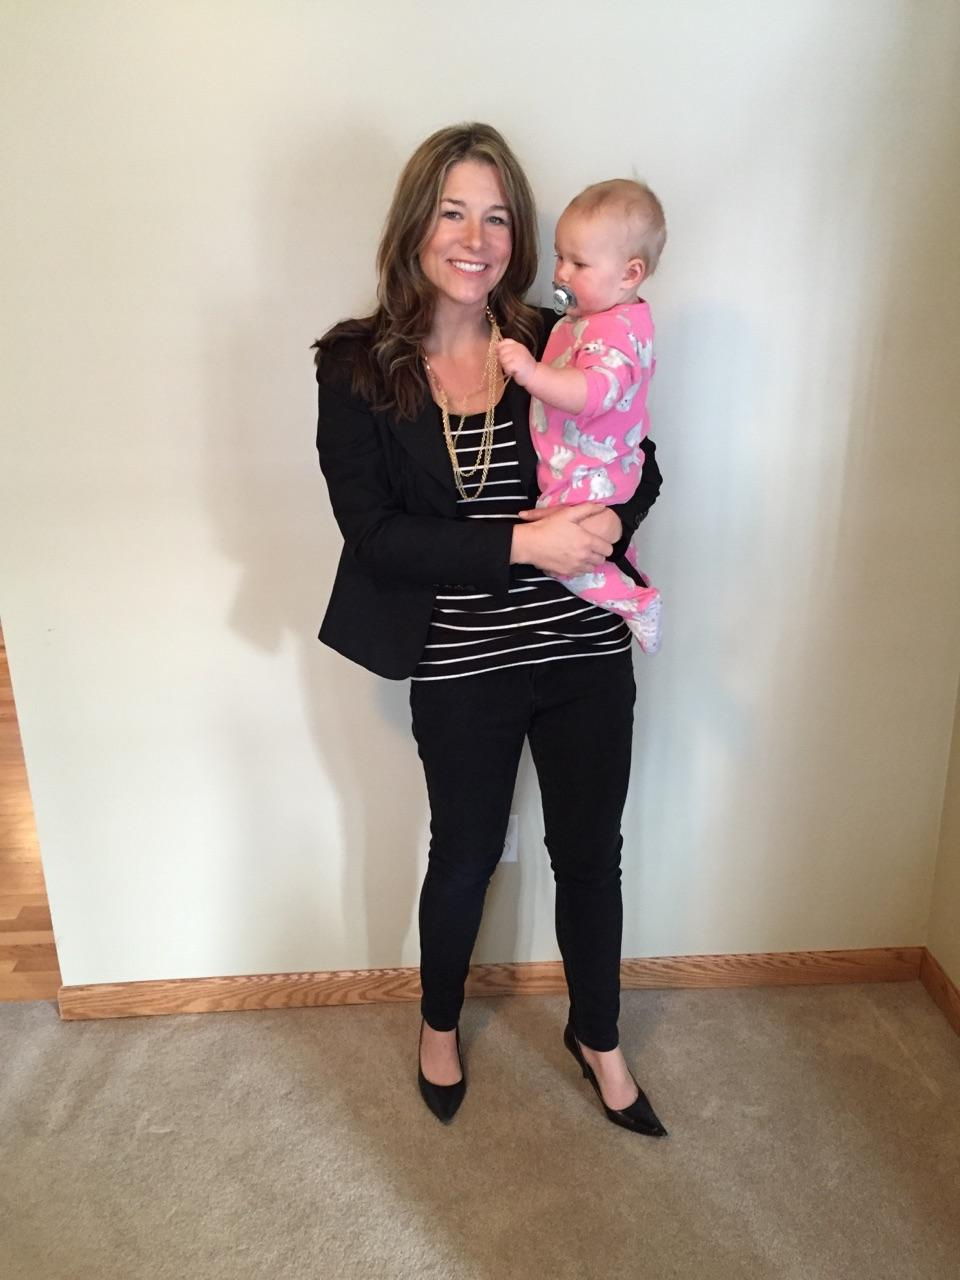 January 2016 Spending time with baby #4 before a night out on the town - 155 lbs and feeling great!